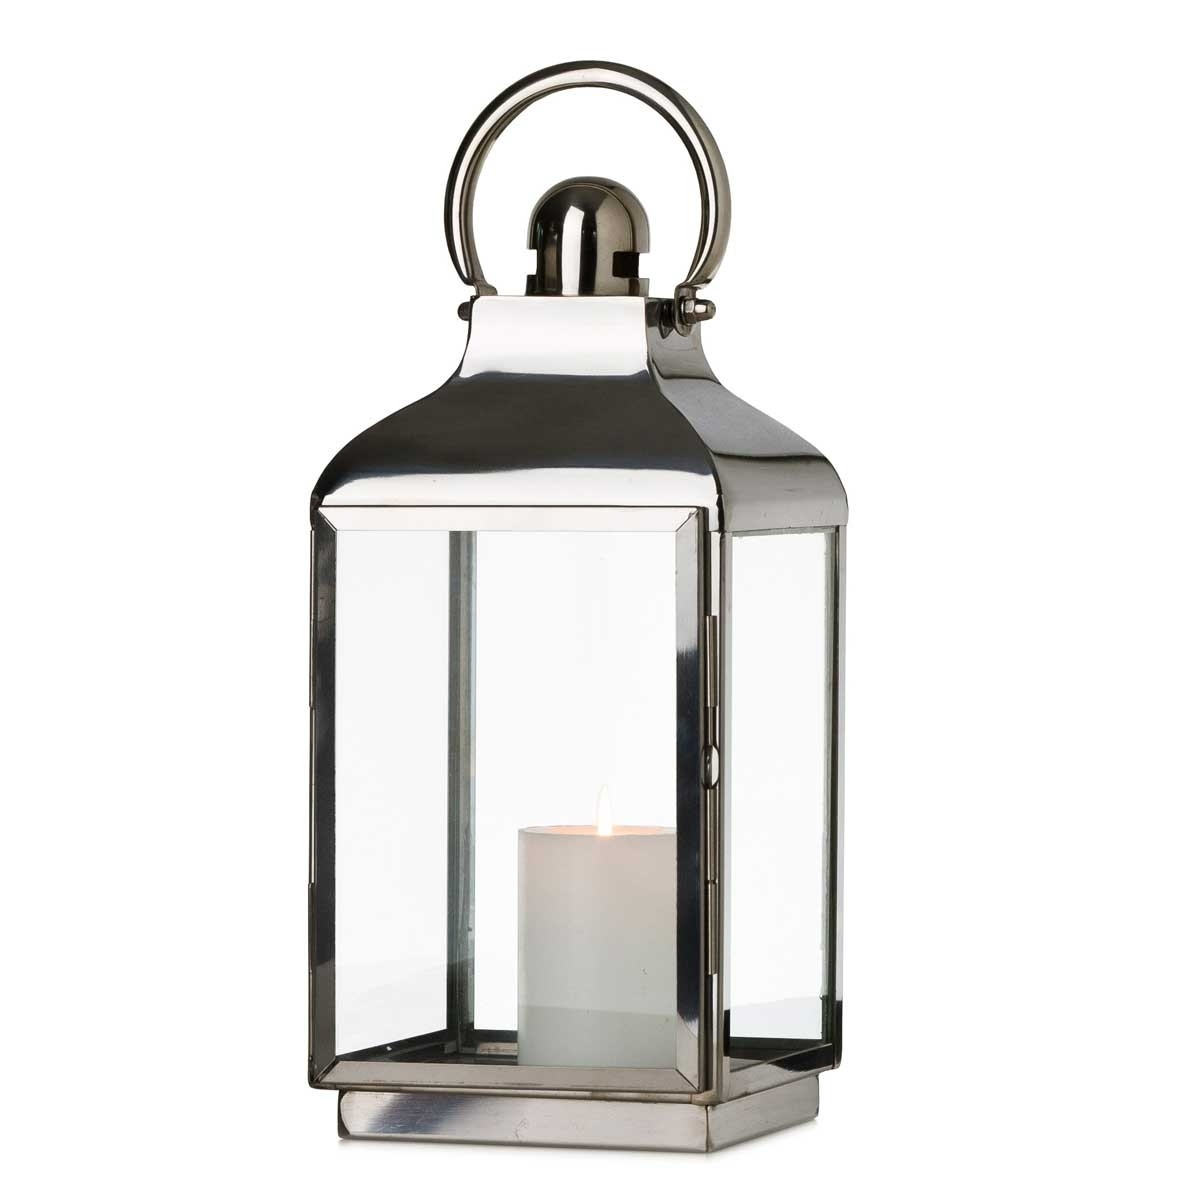 Square Base Lantern – Silver Within Newest Silver Outdoor Lanterns (Gallery 18 of 20)